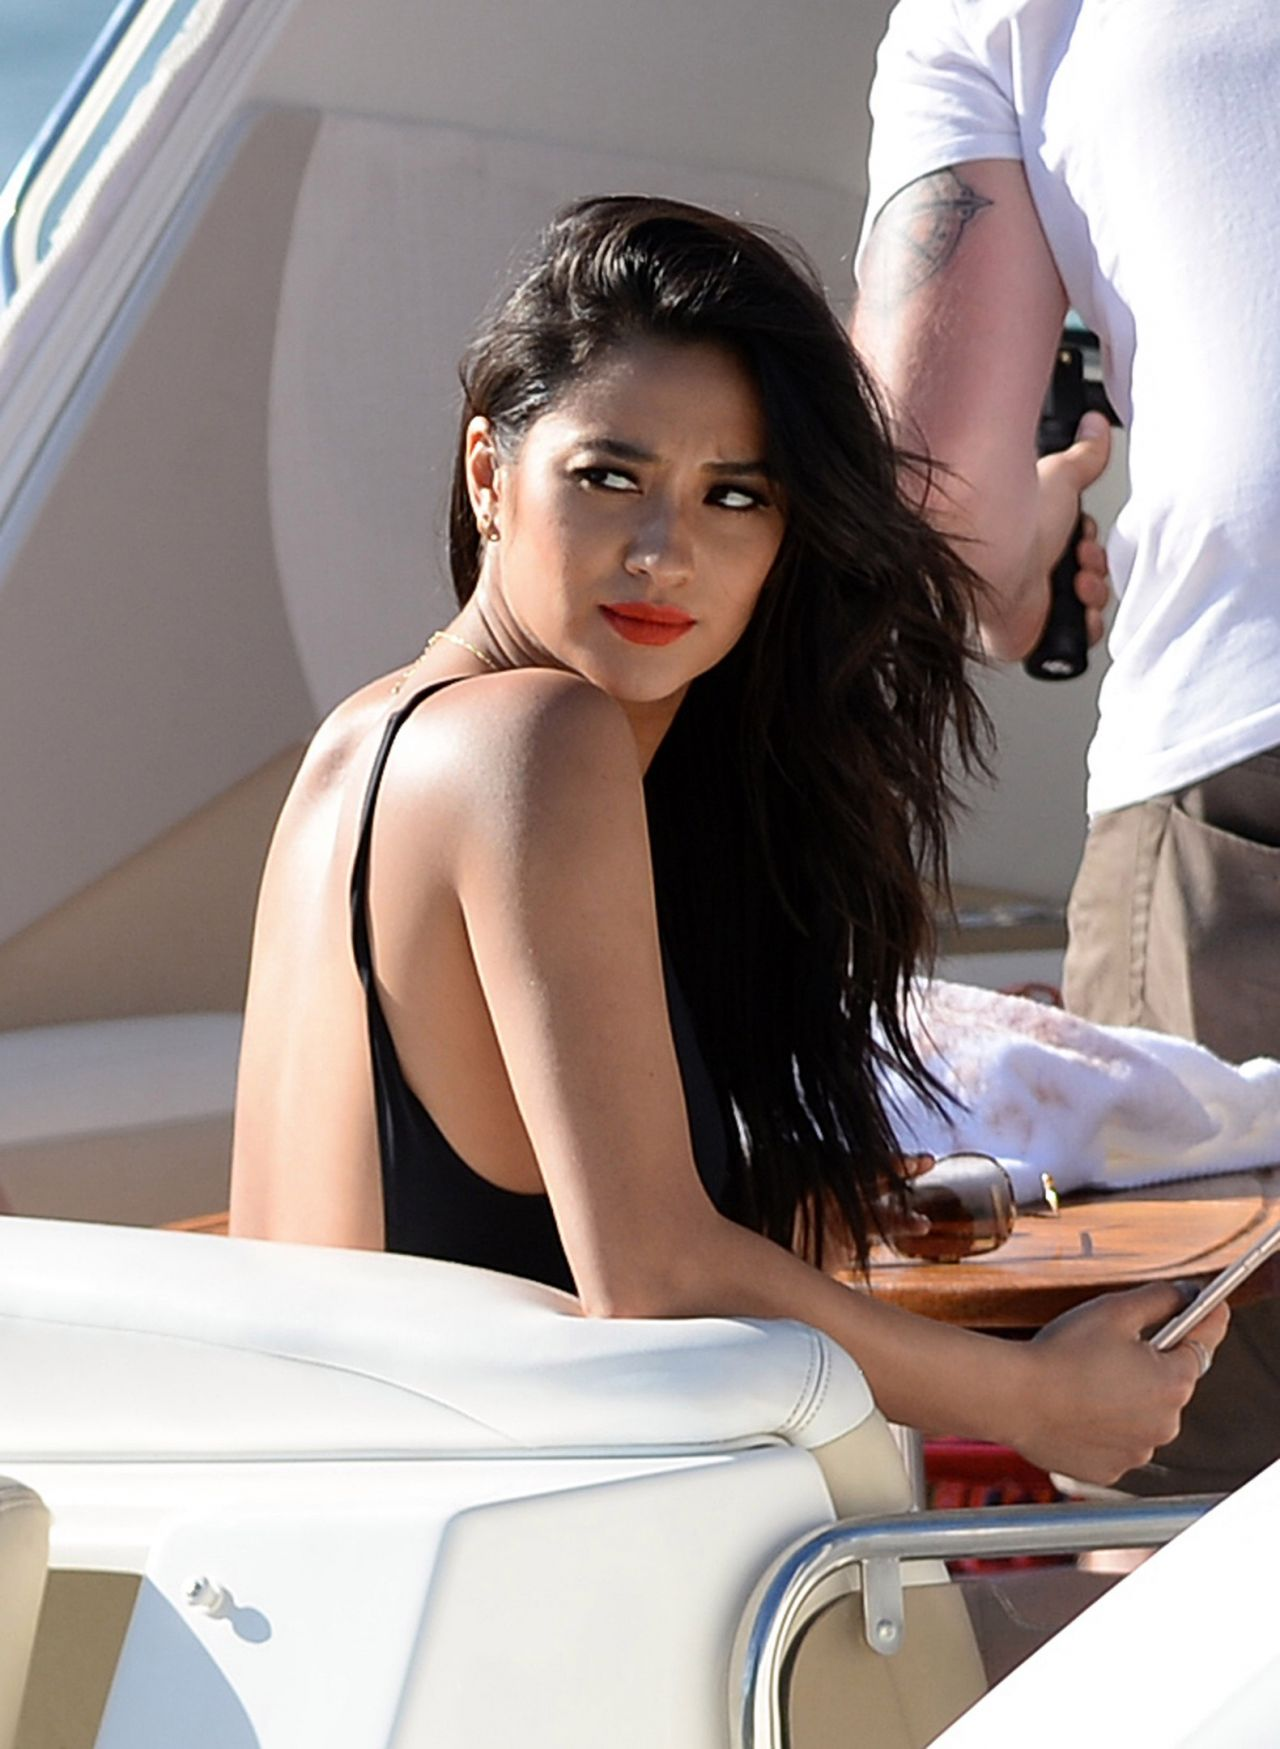 Shay Mitchell Hot In Jeans Shorts At Yacht With Friends